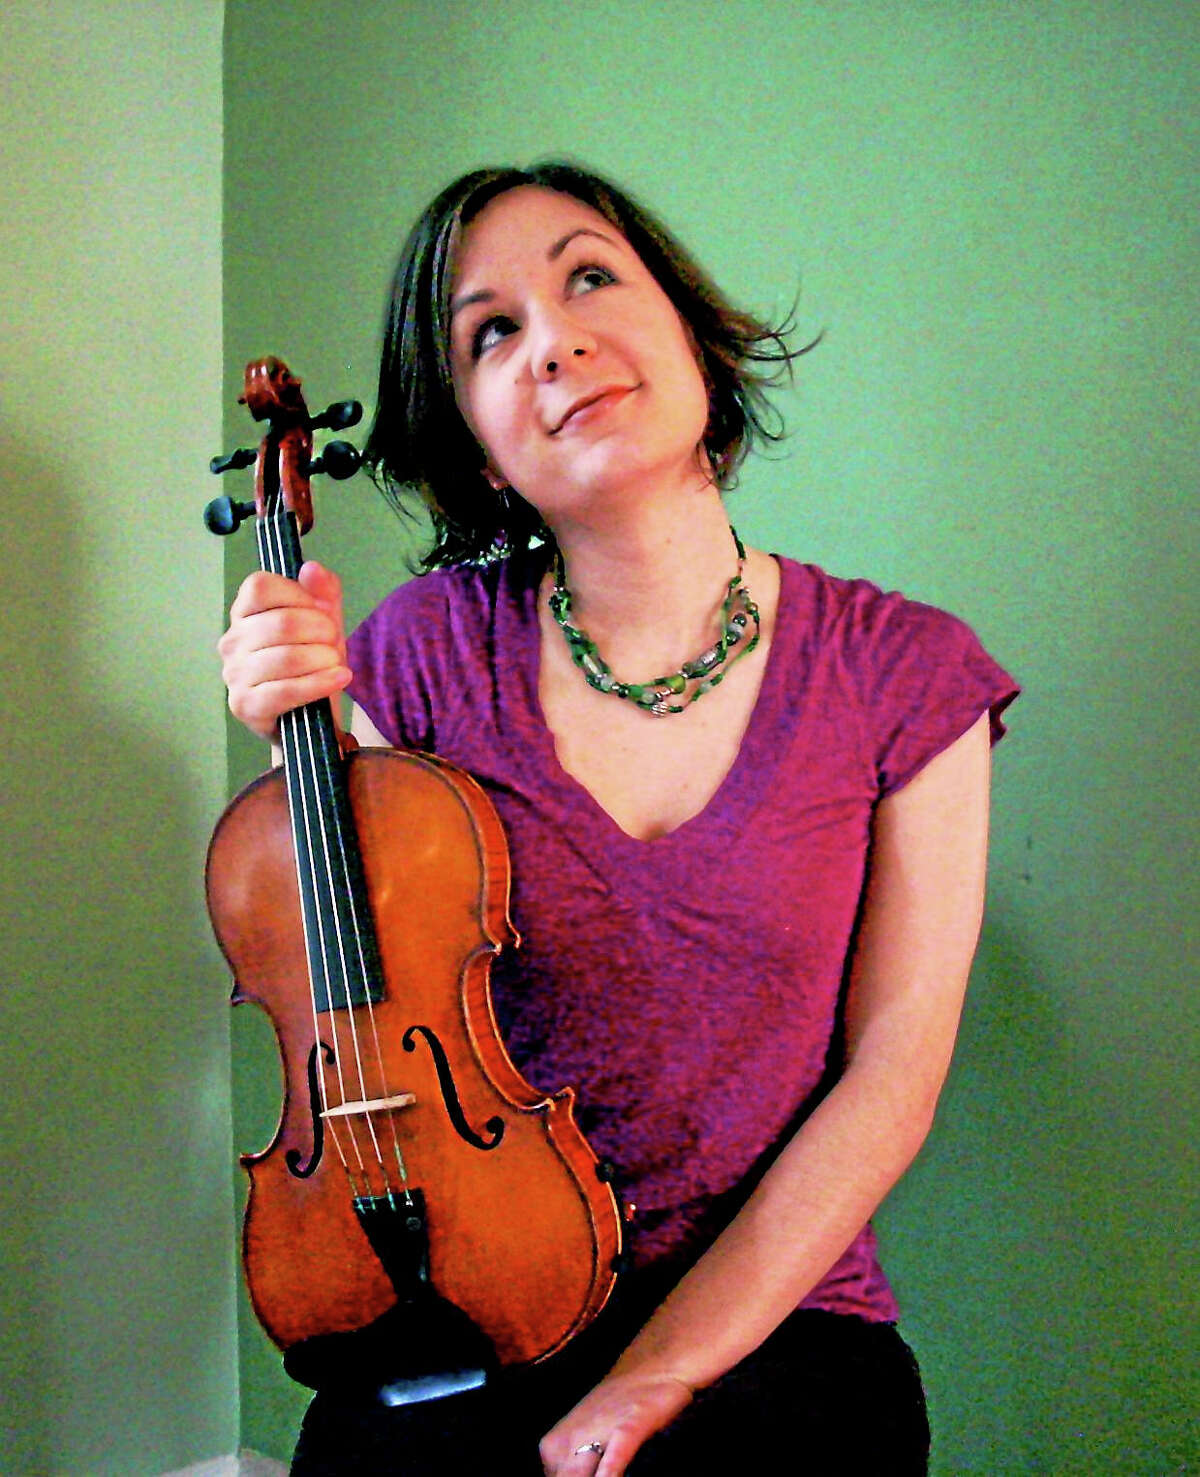 Contributed photoBranford Folk Music Society oresents a concert featuring the dynamic fiddling and melodious singing of Lissa Schneckenburger, accompanied by the guitar stylings of Bethany Waickman on Saturday, Dec. 12.